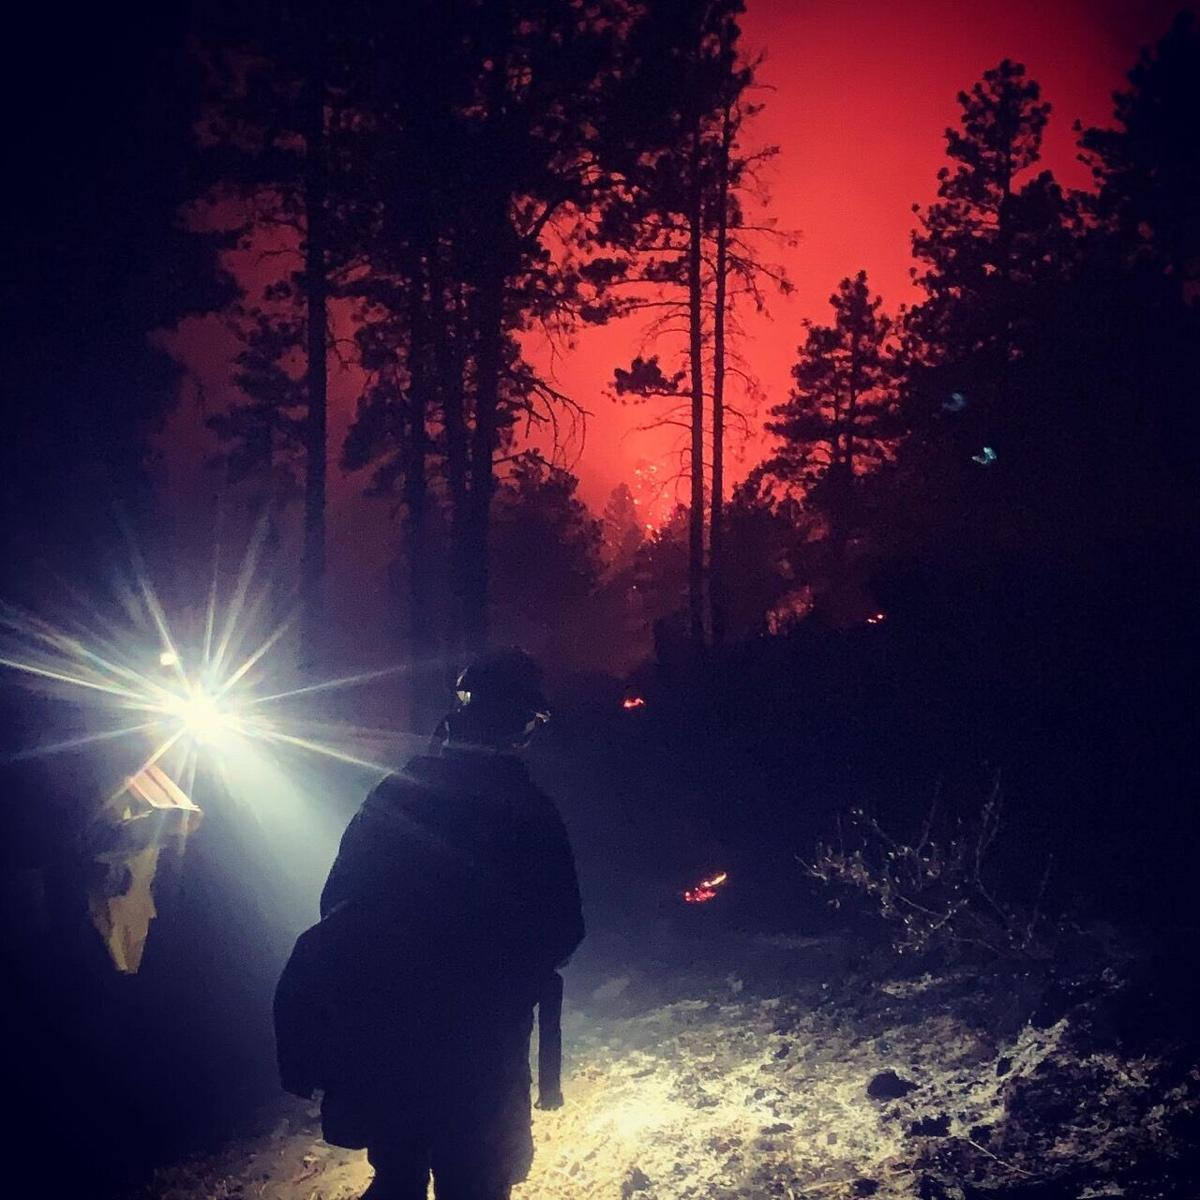 Out of the fire: Oswego County forest ranger returns from Rocky Mountain duty